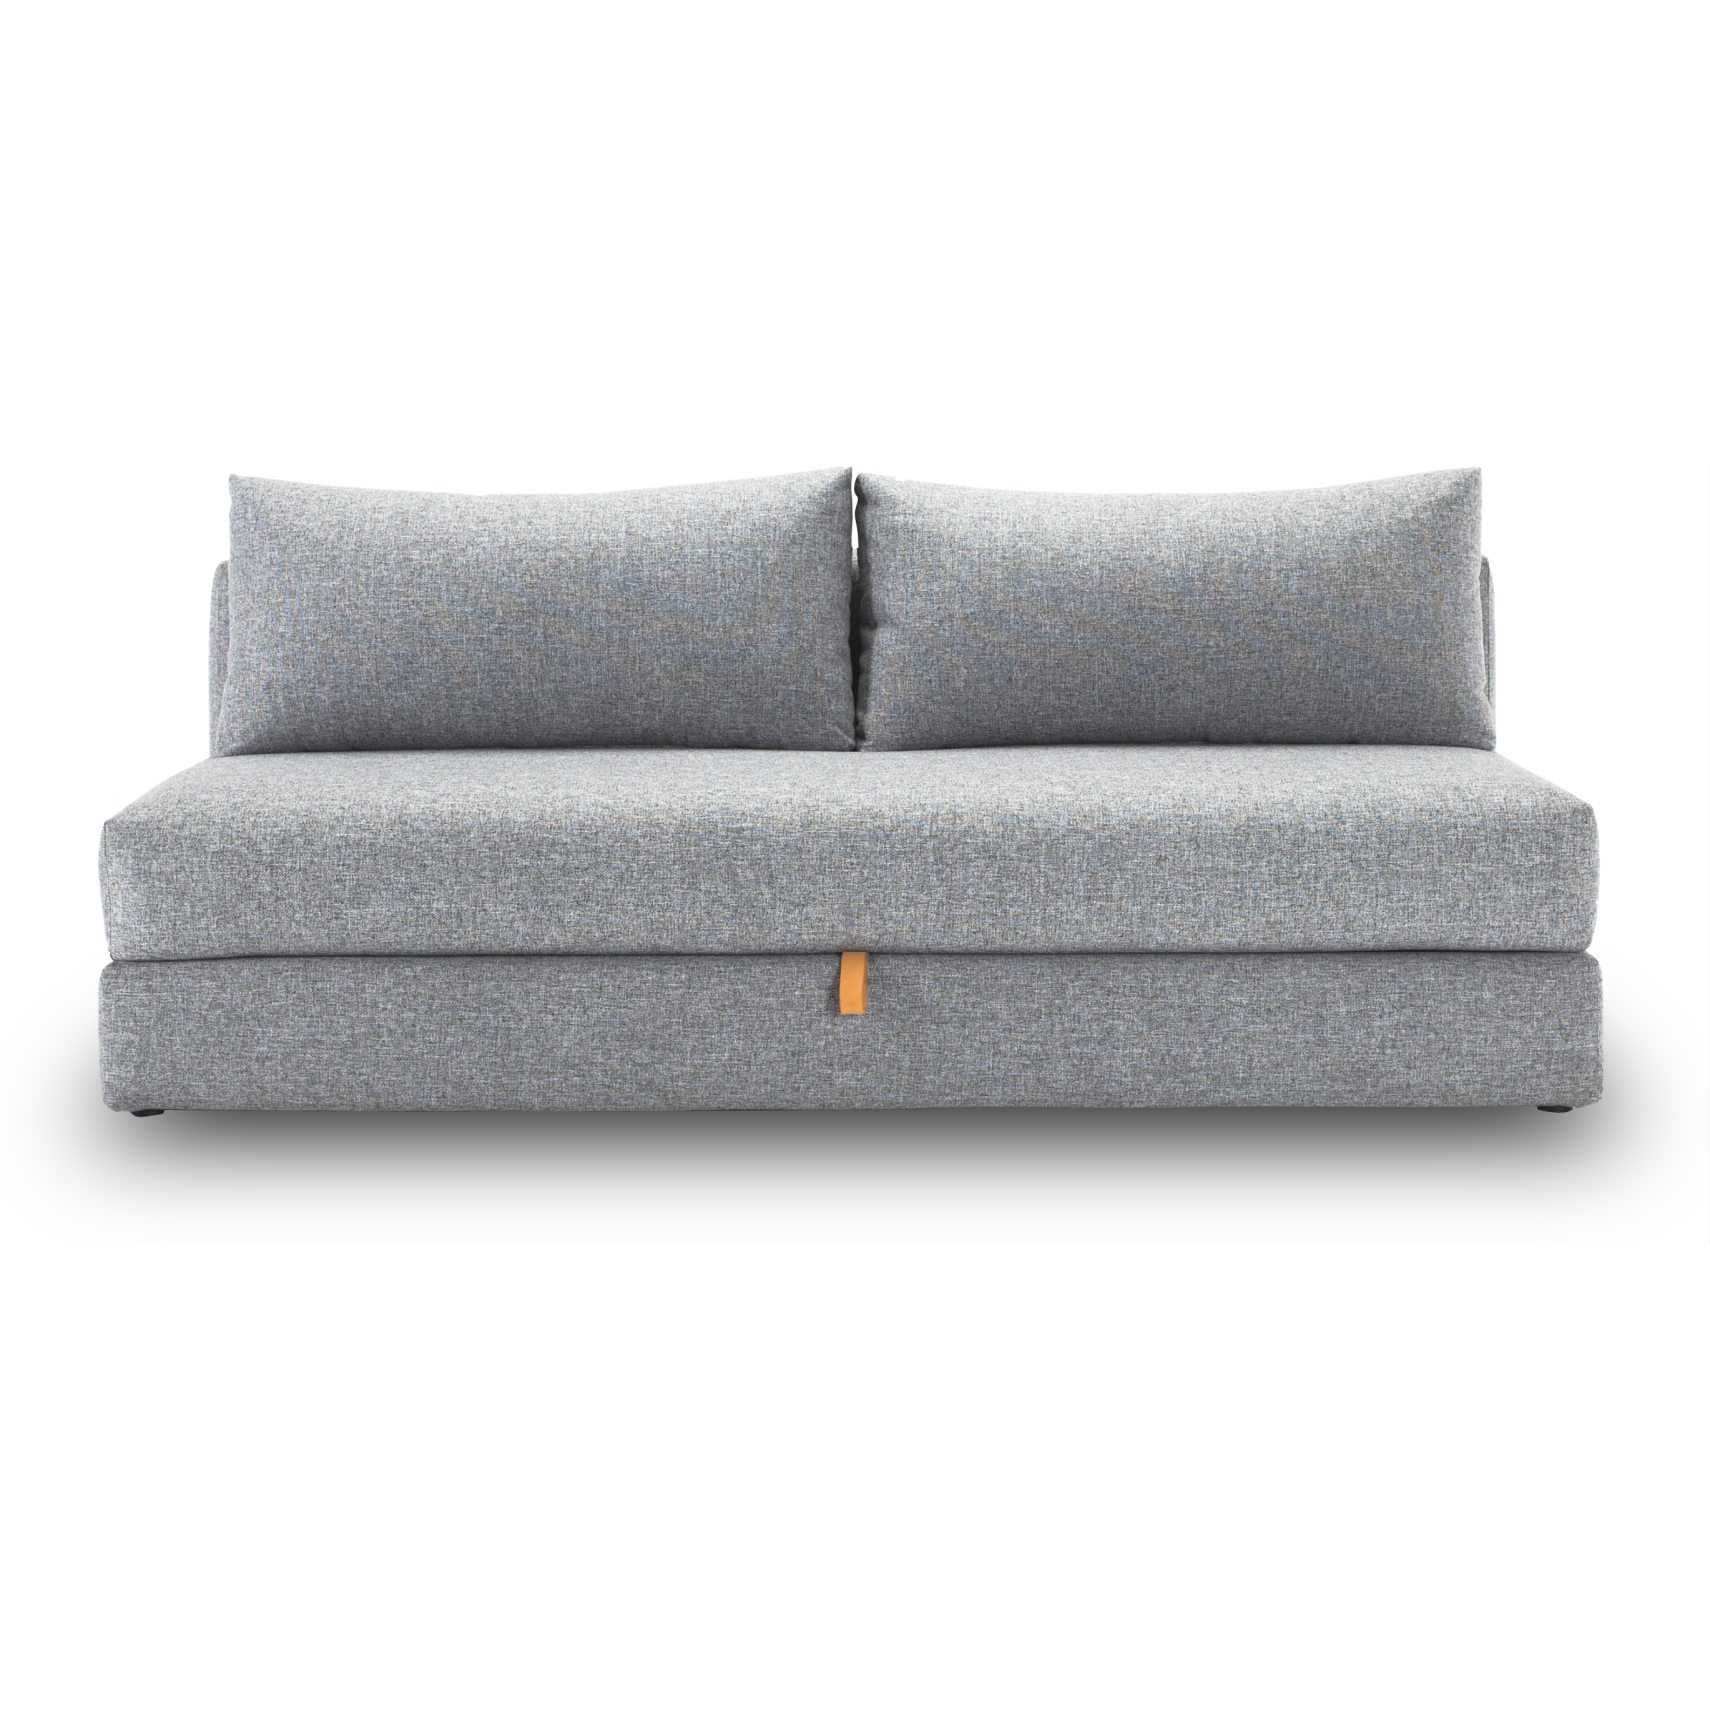 Osvald de luxe Sovesofa - Twist 565 Granite, pocketspring/hypersoft skummadras og magasin med læderstrop